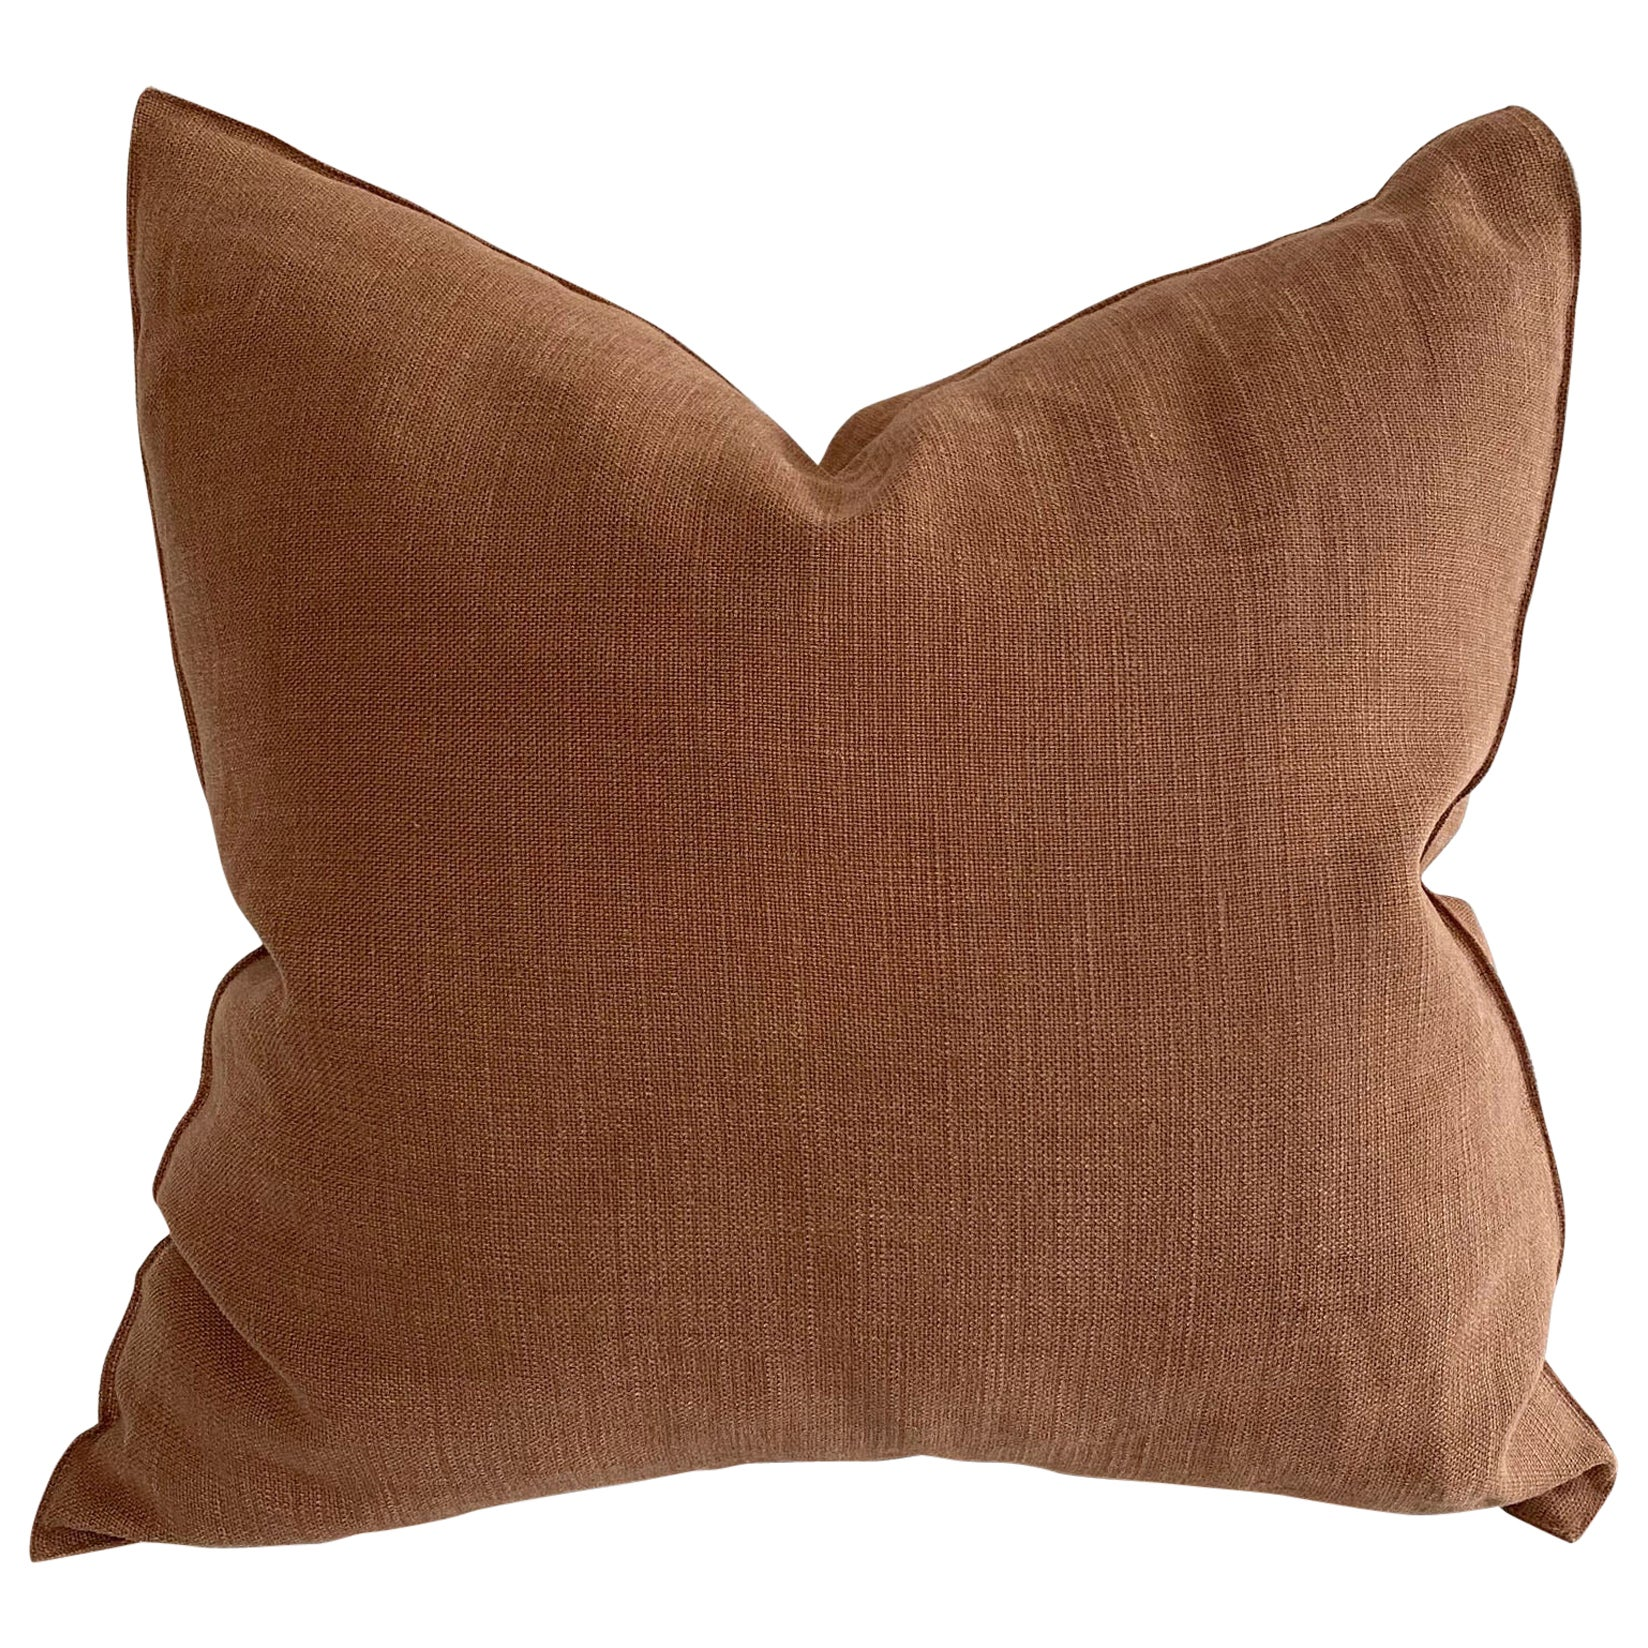 Stone Washed Terracotta Rust Color Belgian Linen Accent Pillow Cover